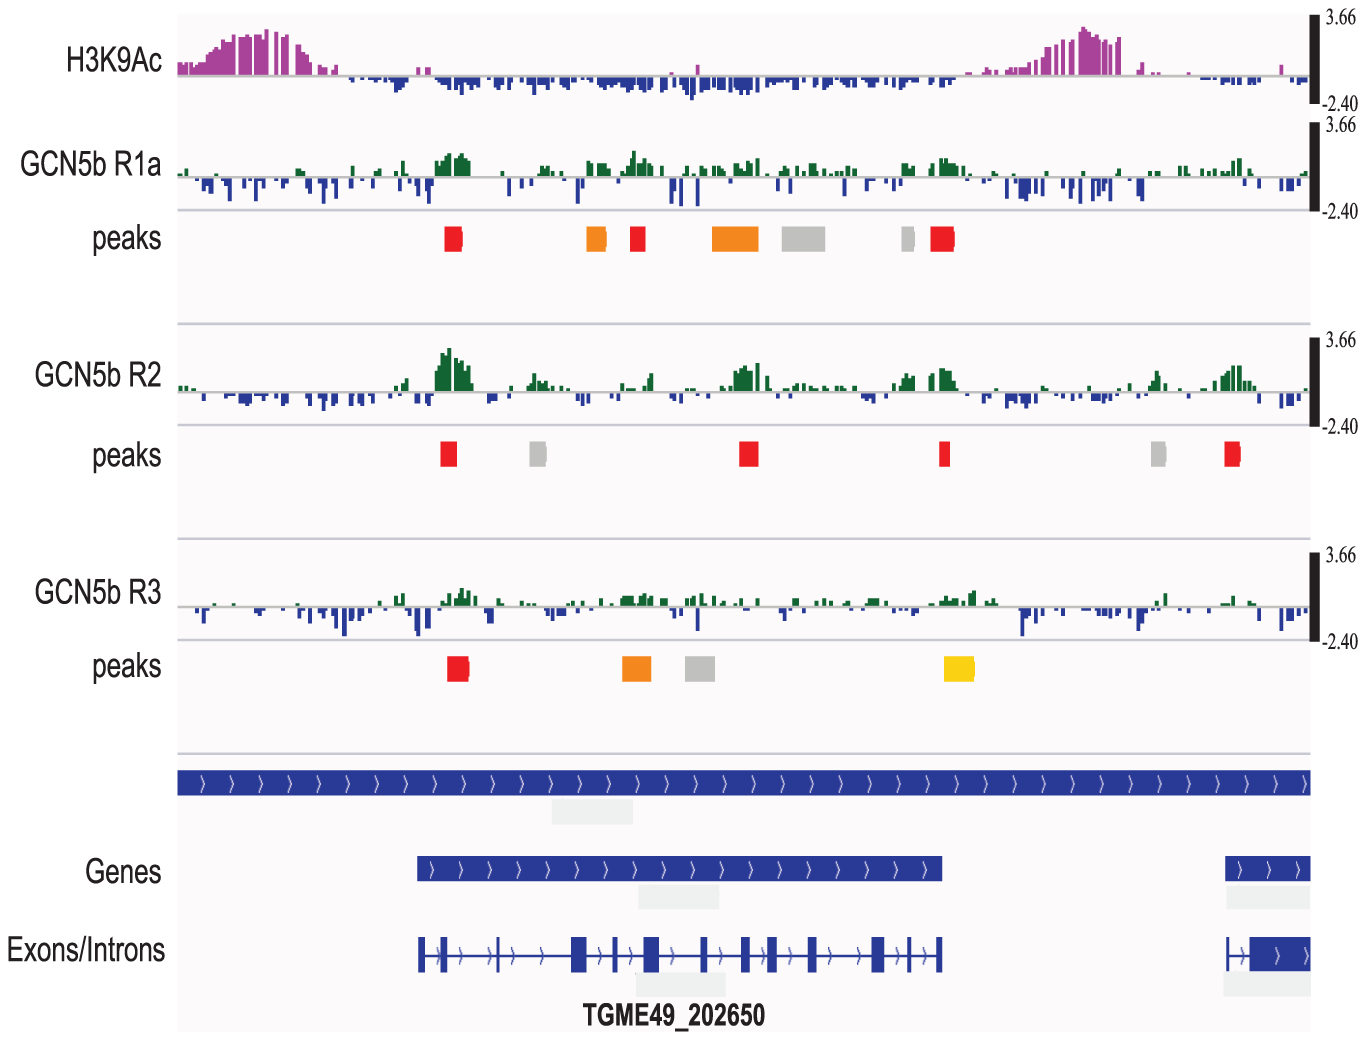 GCN5b associates with genes containing introns, but is not preferentially associated with promoters.